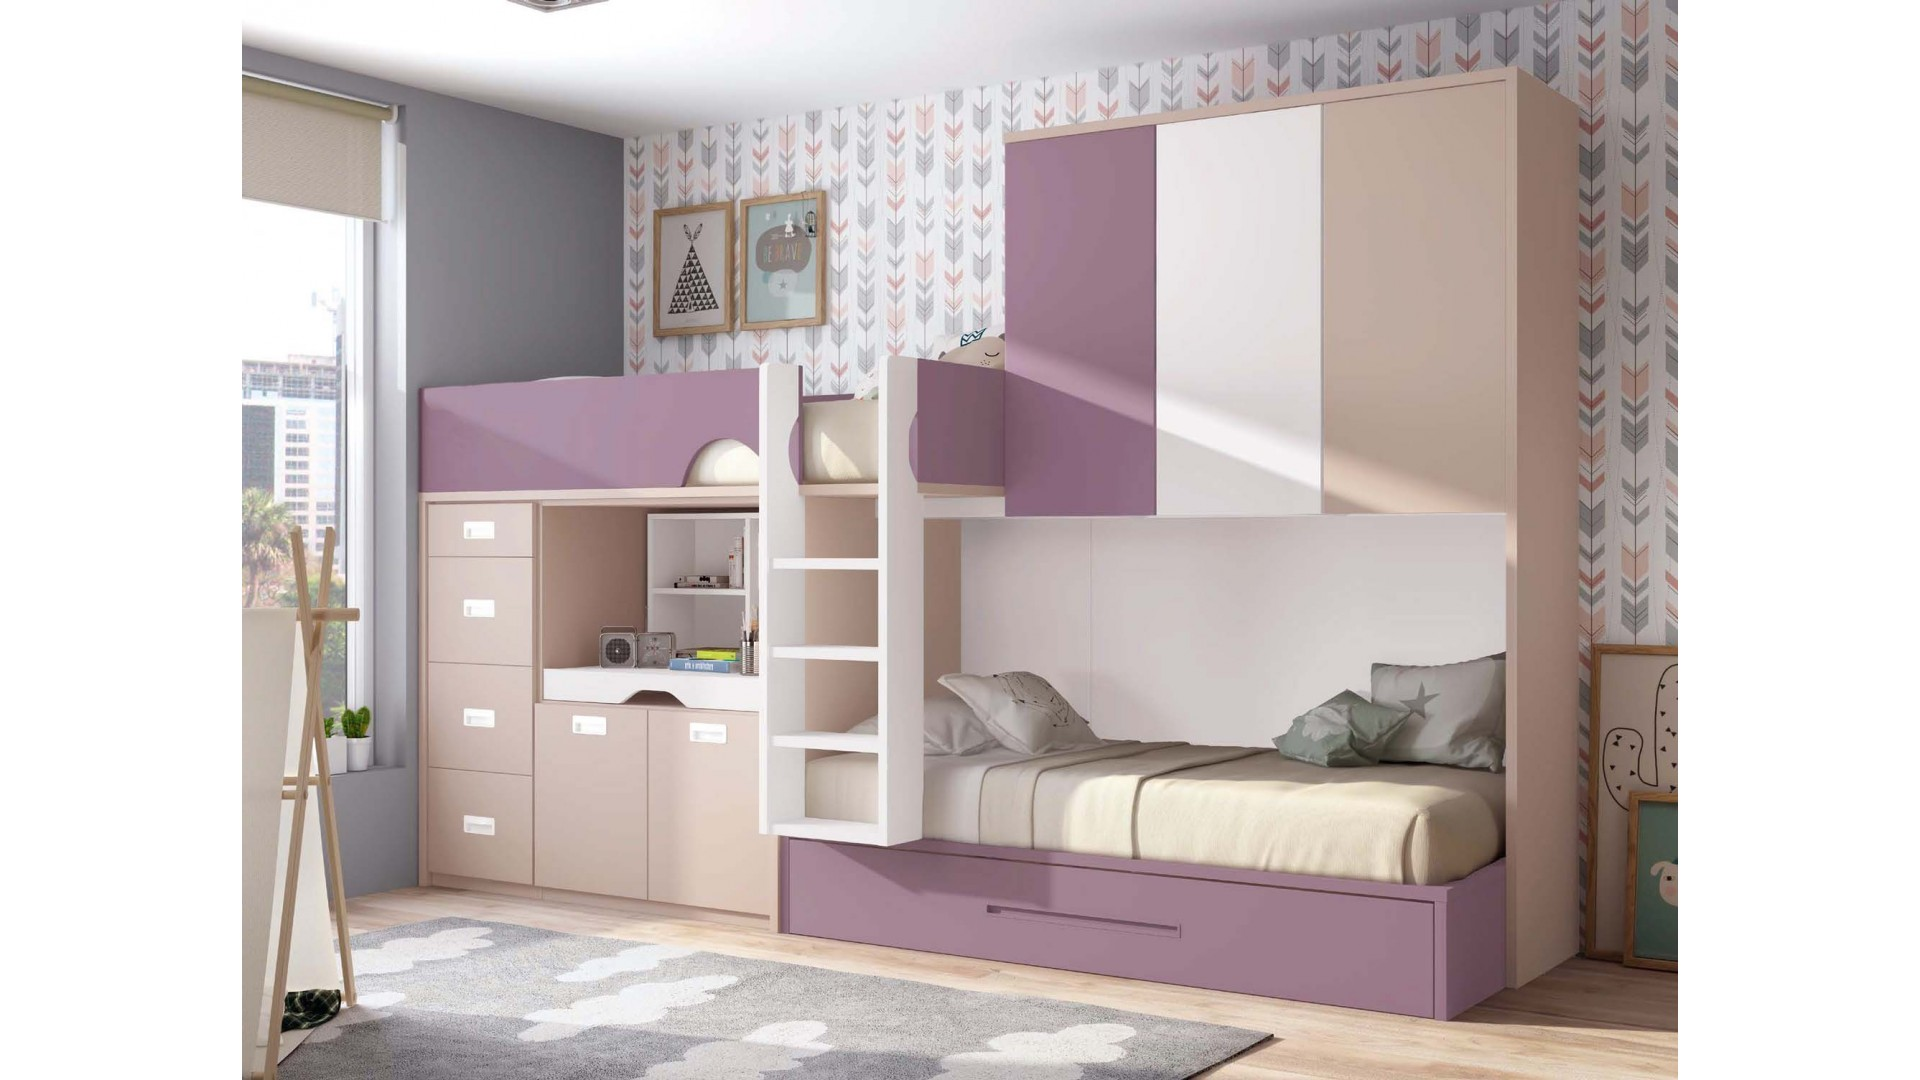 lit superpos fille personnalisable lit gigogne glicerio so nuit. Black Bedroom Furniture Sets. Home Design Ideas